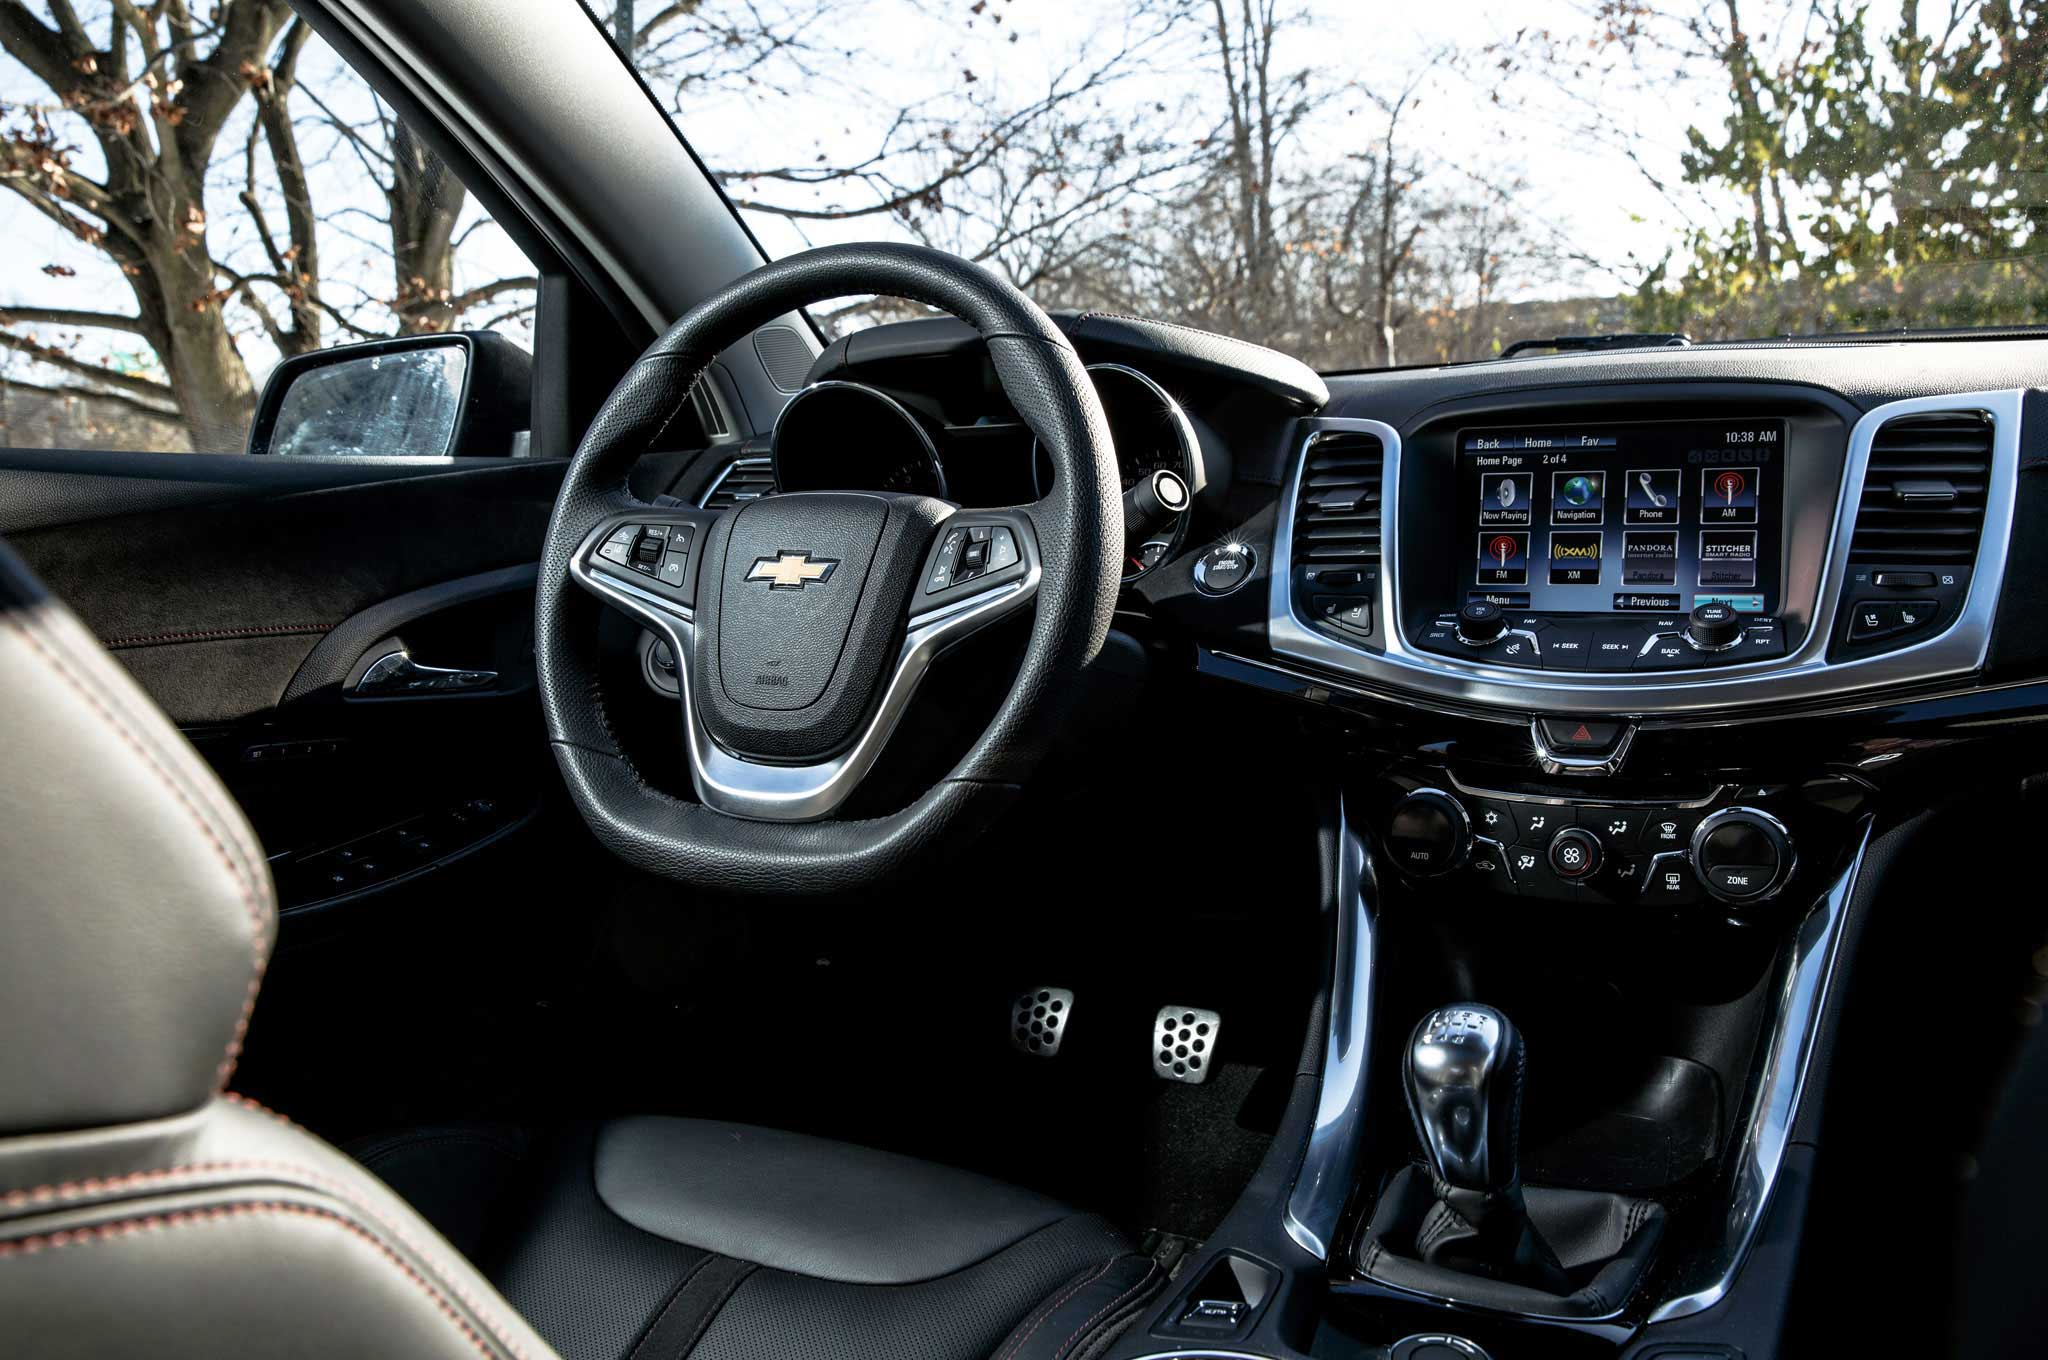 2015 Chevrolet SS Review - Lowrider